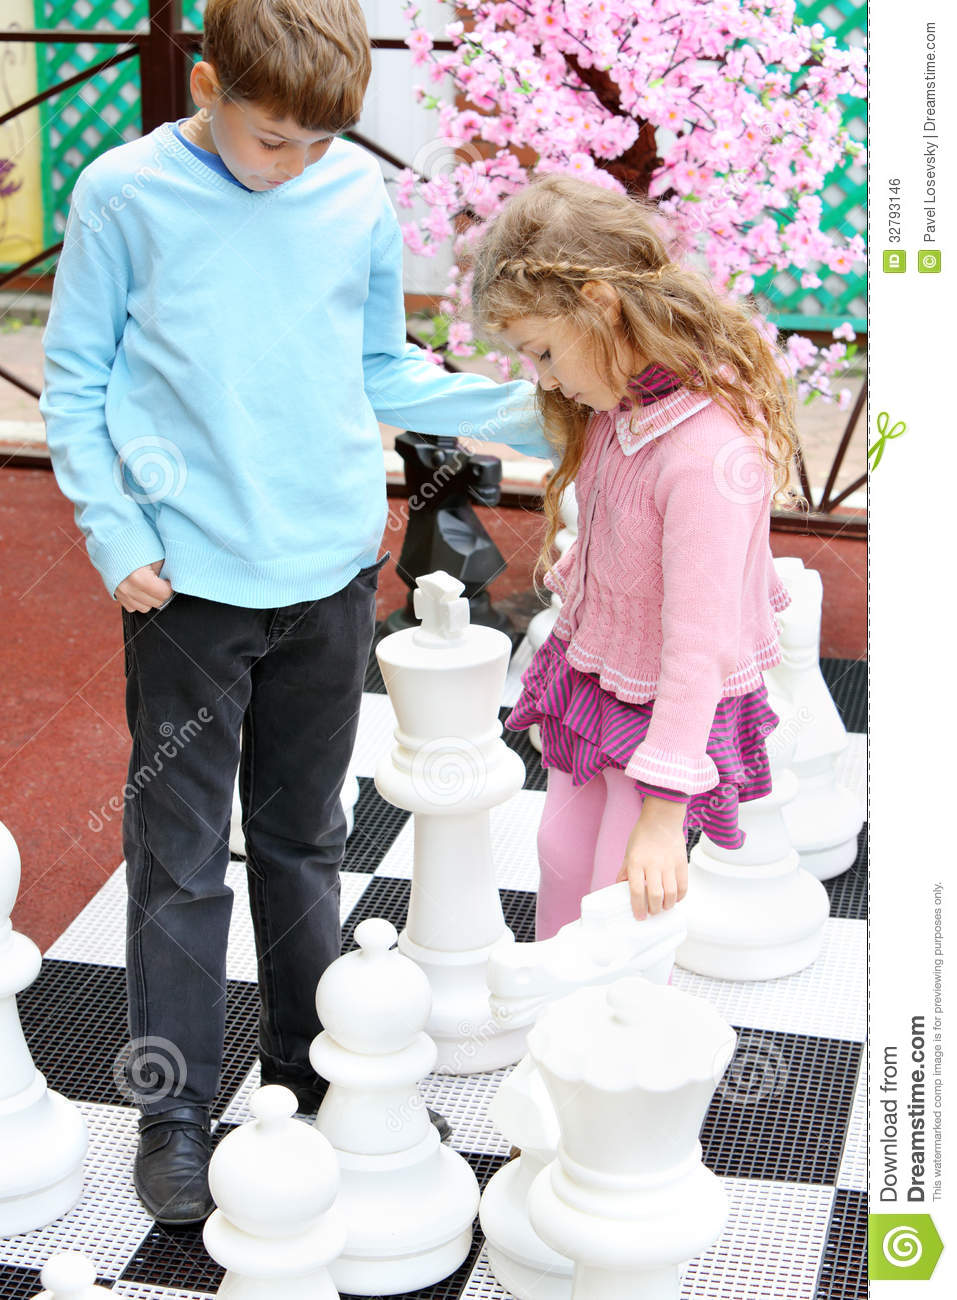 Boy and girl move big chess pieces on big chessboard